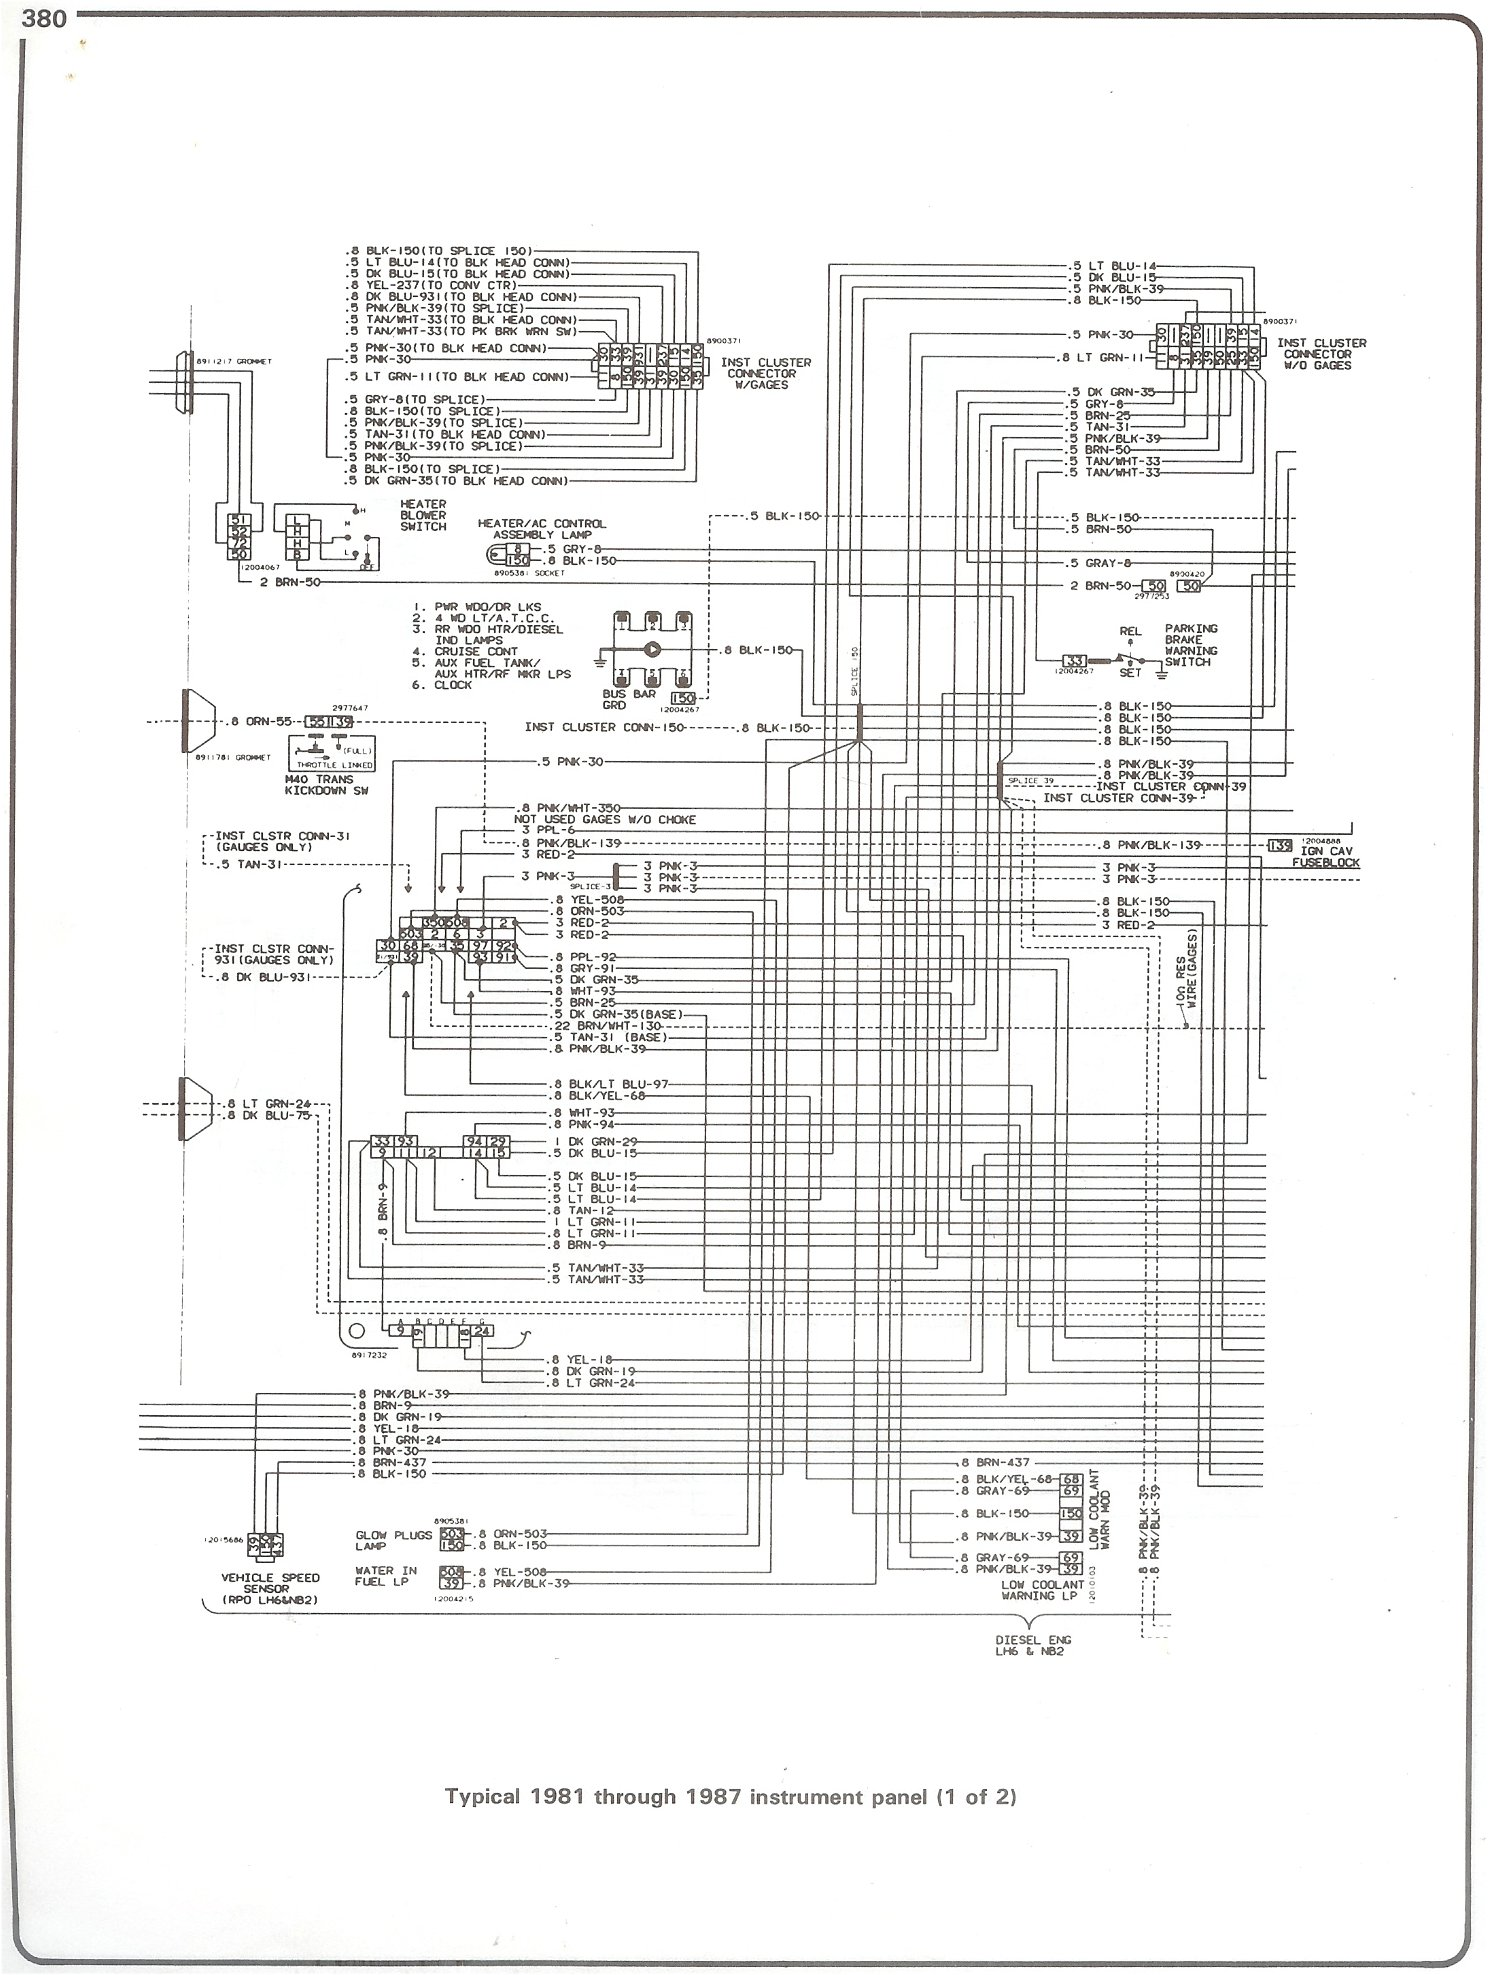 1984 s10 wiring diagram blog wiring diagram 1989 chevy s10 wiring diagram  1984 s10 wiring harness